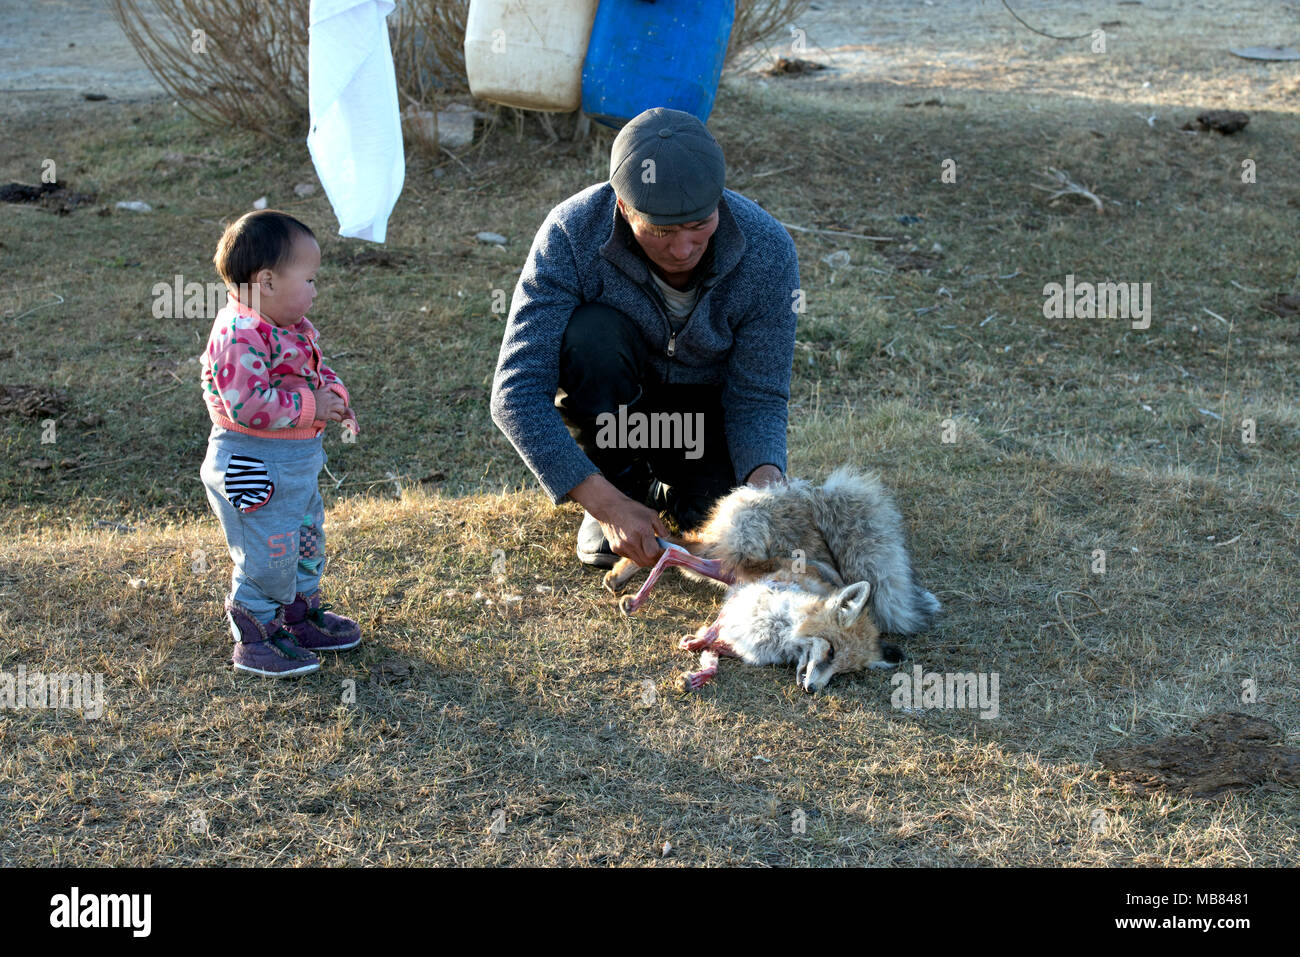 A Kazakh man skins a fox caught by a golden eagle as his young daughter watches intently. - Stock Image